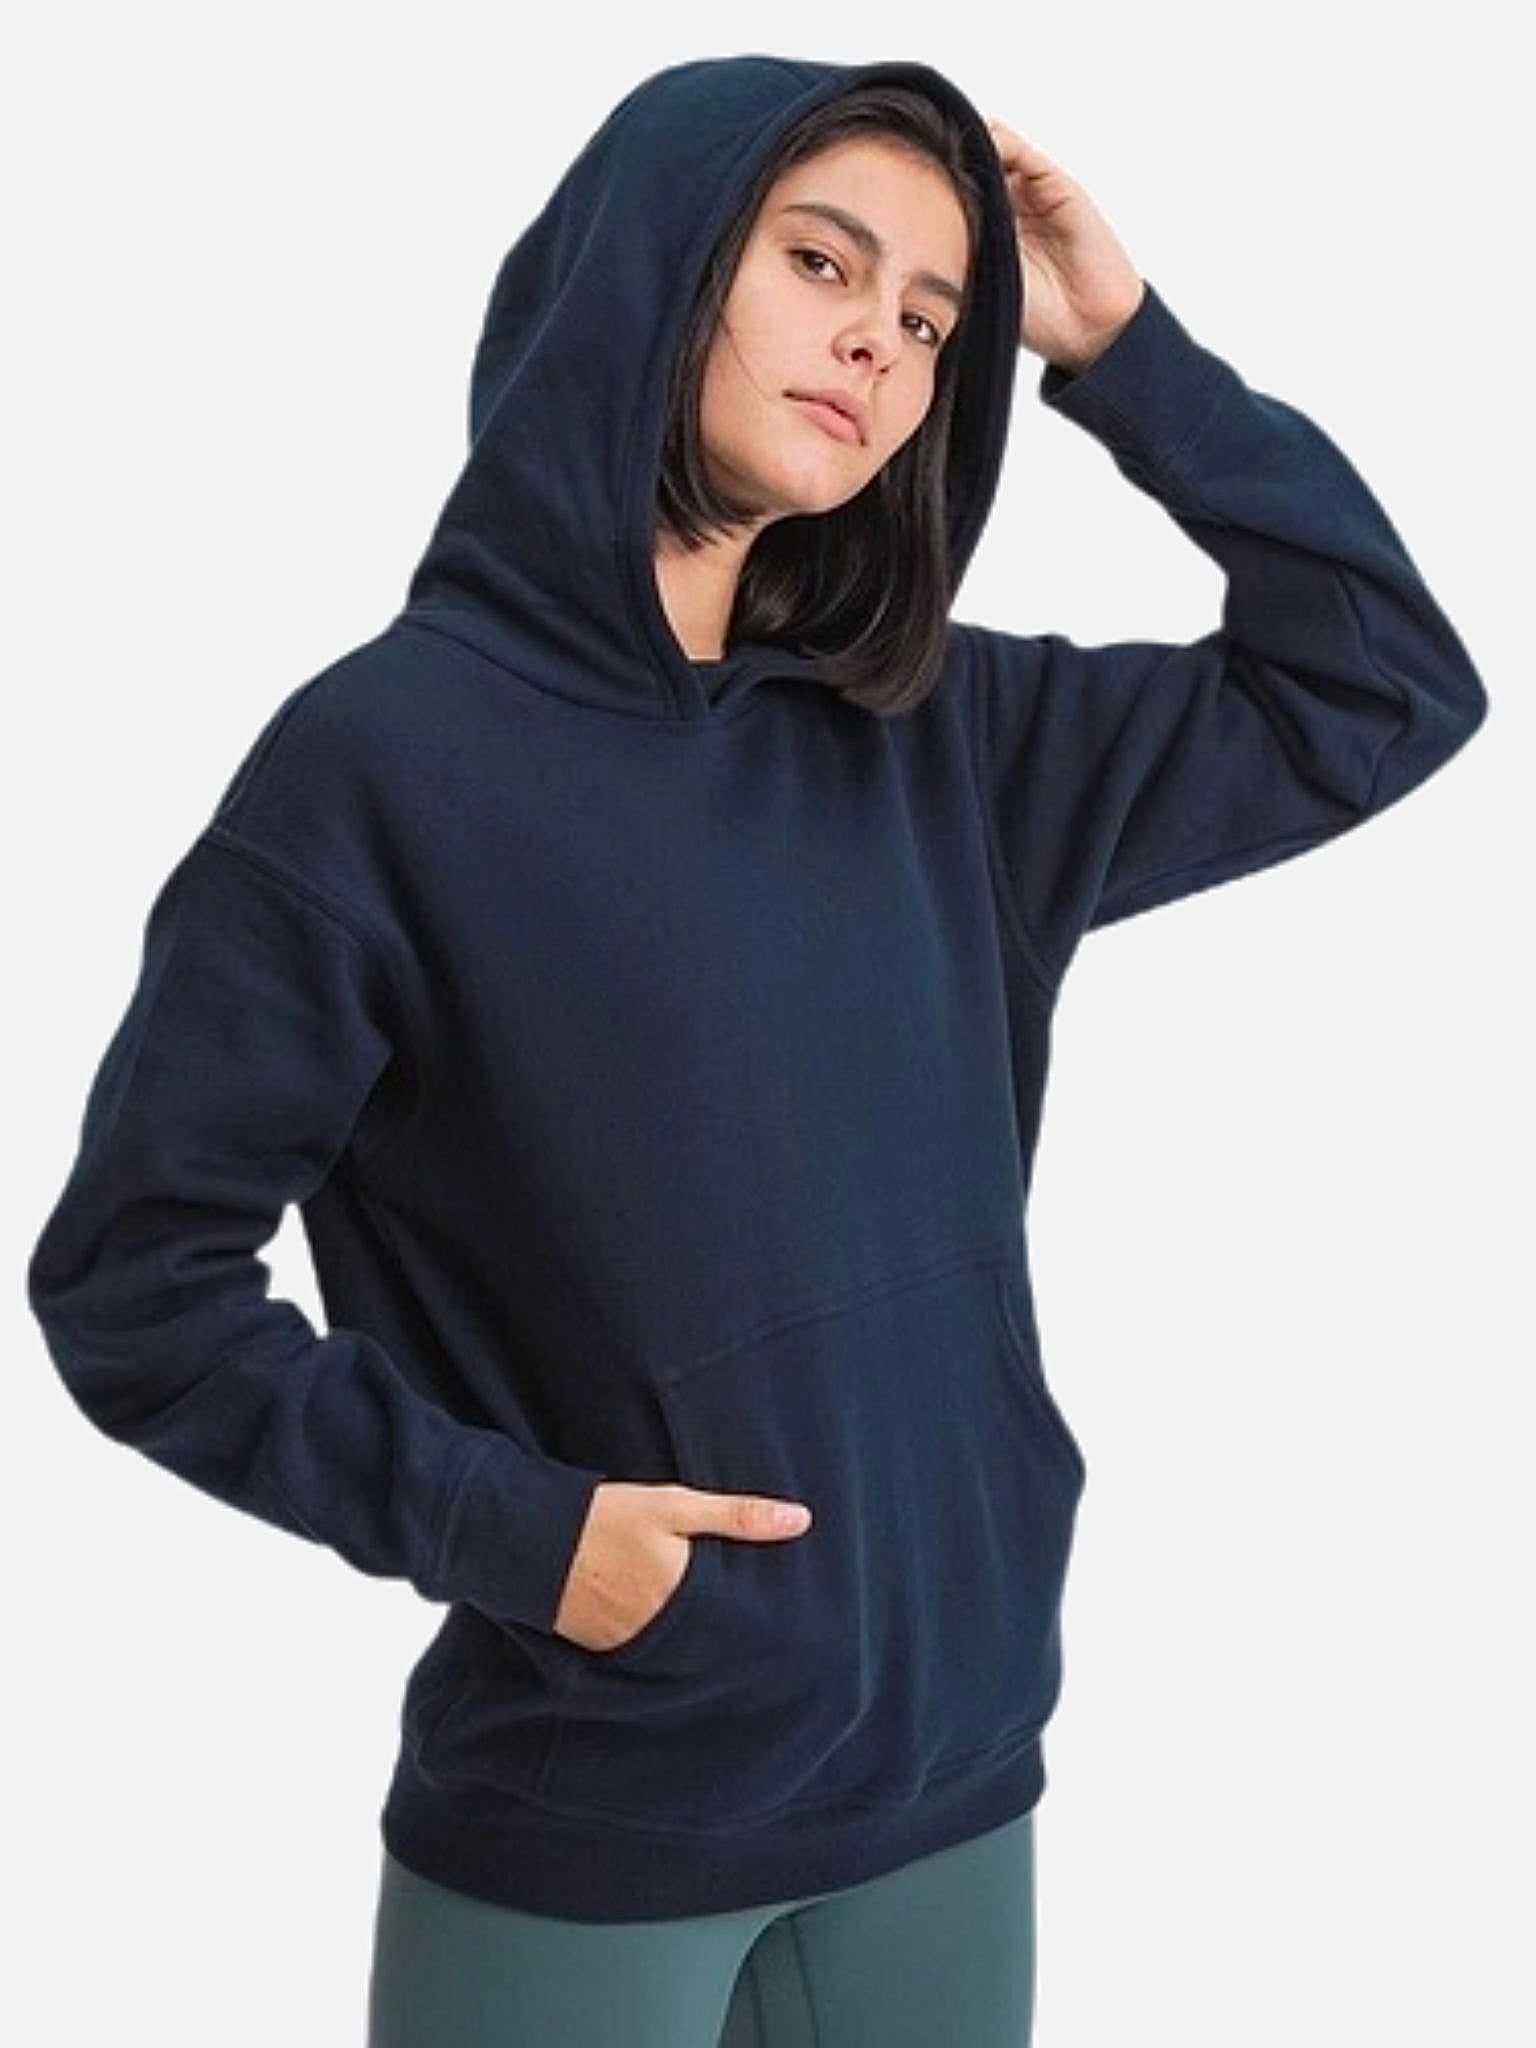 Vintage Fleece Hoodie      Classic Leisure Pocket Warm Hip Length Navy Blue color Hooded Exercise Training Gym Sport Fitness Workout Women's Outdoor miFit Sweatshirts Trend